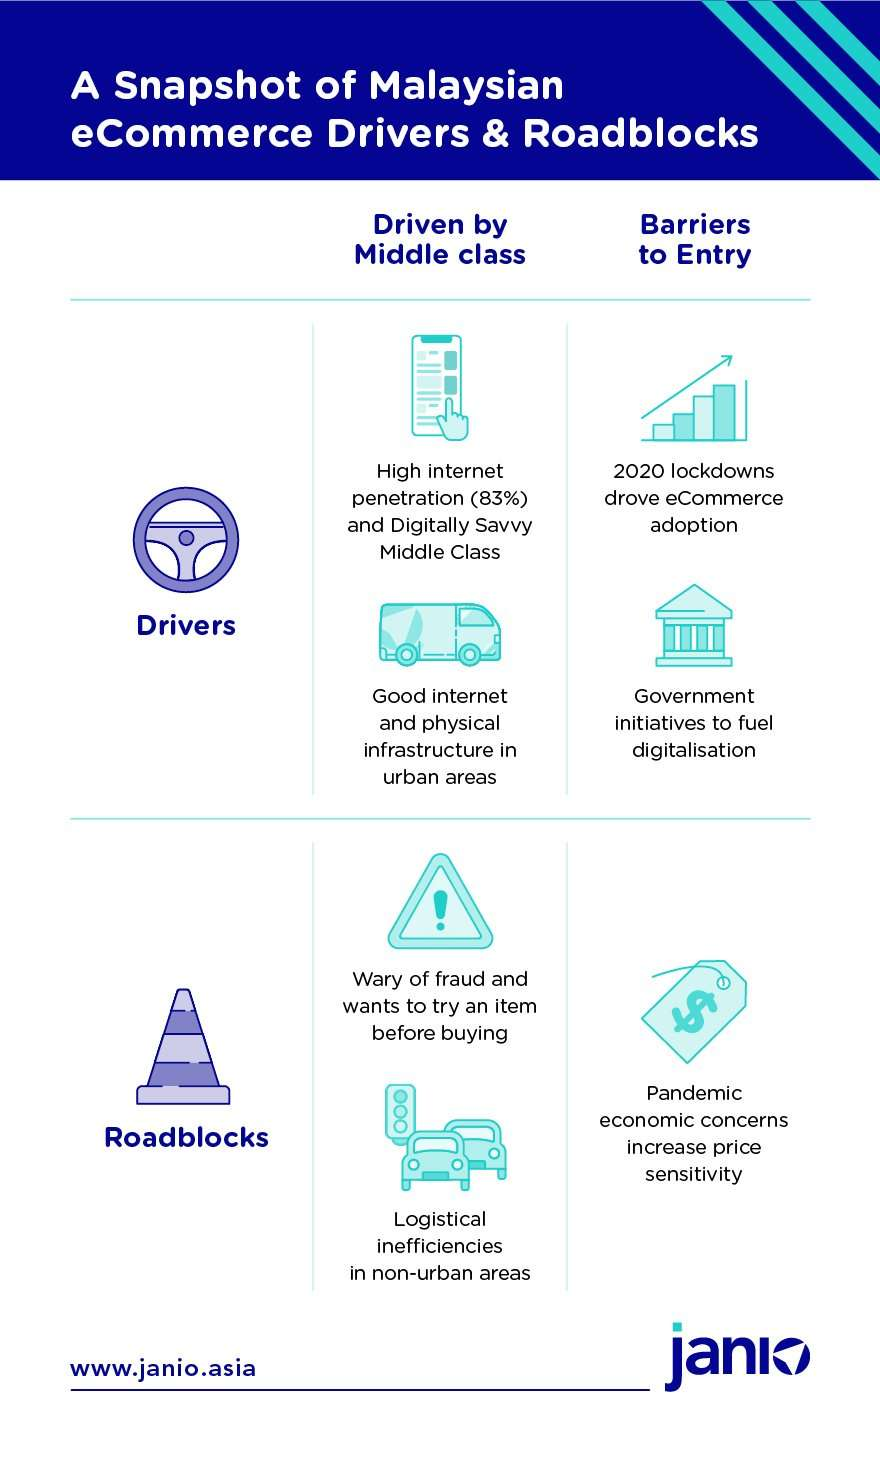 Snapshot of Malaysian eCommerce Drivers and Roadblocks - High internet penetration, good infrastructure, lockdowns, govermnent initiatives, wary of fraud, logistical inefficiencies in rural areas, price sensitivity due to economic situation